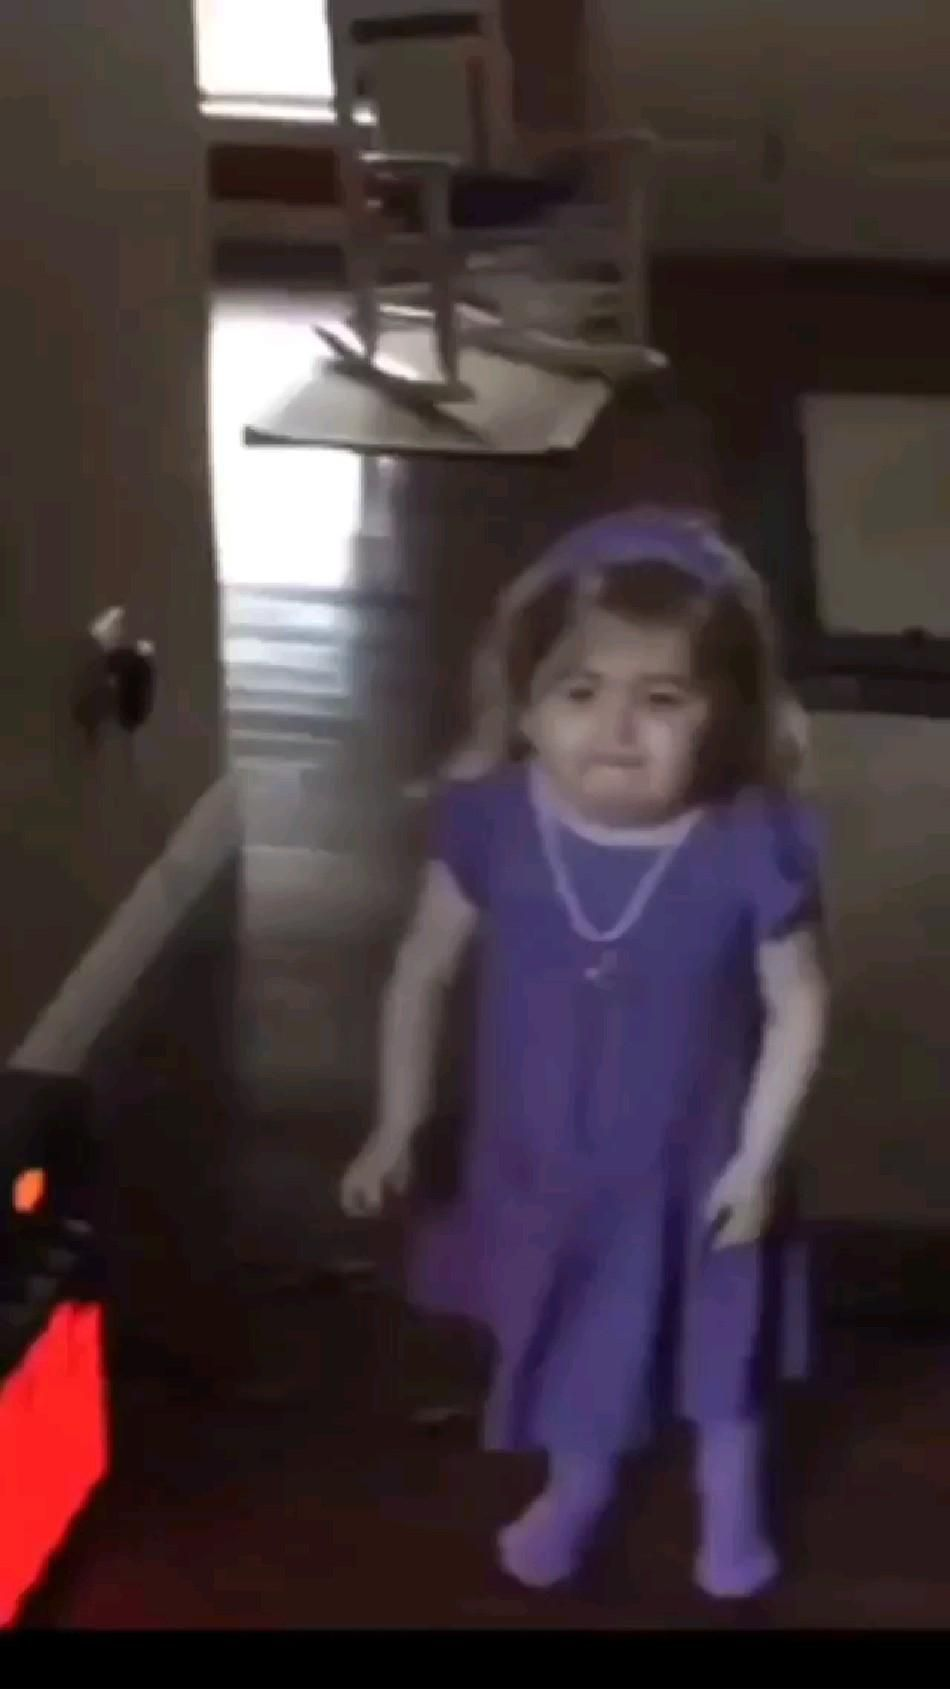 Another one    Practice for dancing    little kid    Funny moments    funny videos    #followformore